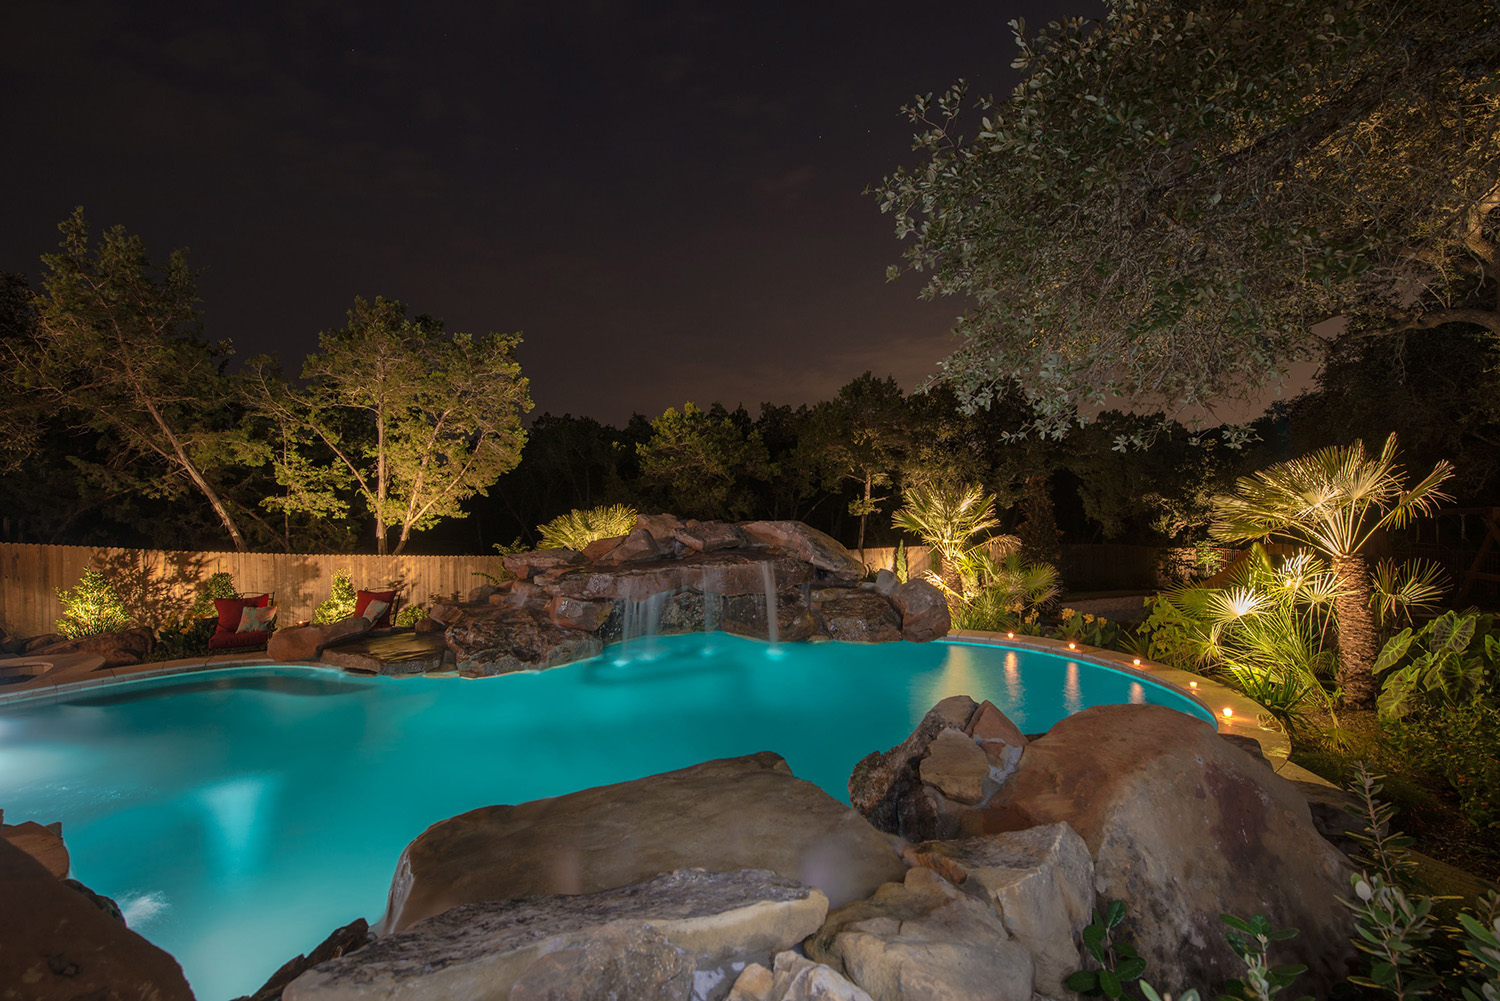 Automated technology and LED lighting make this custom pool stunning at night.